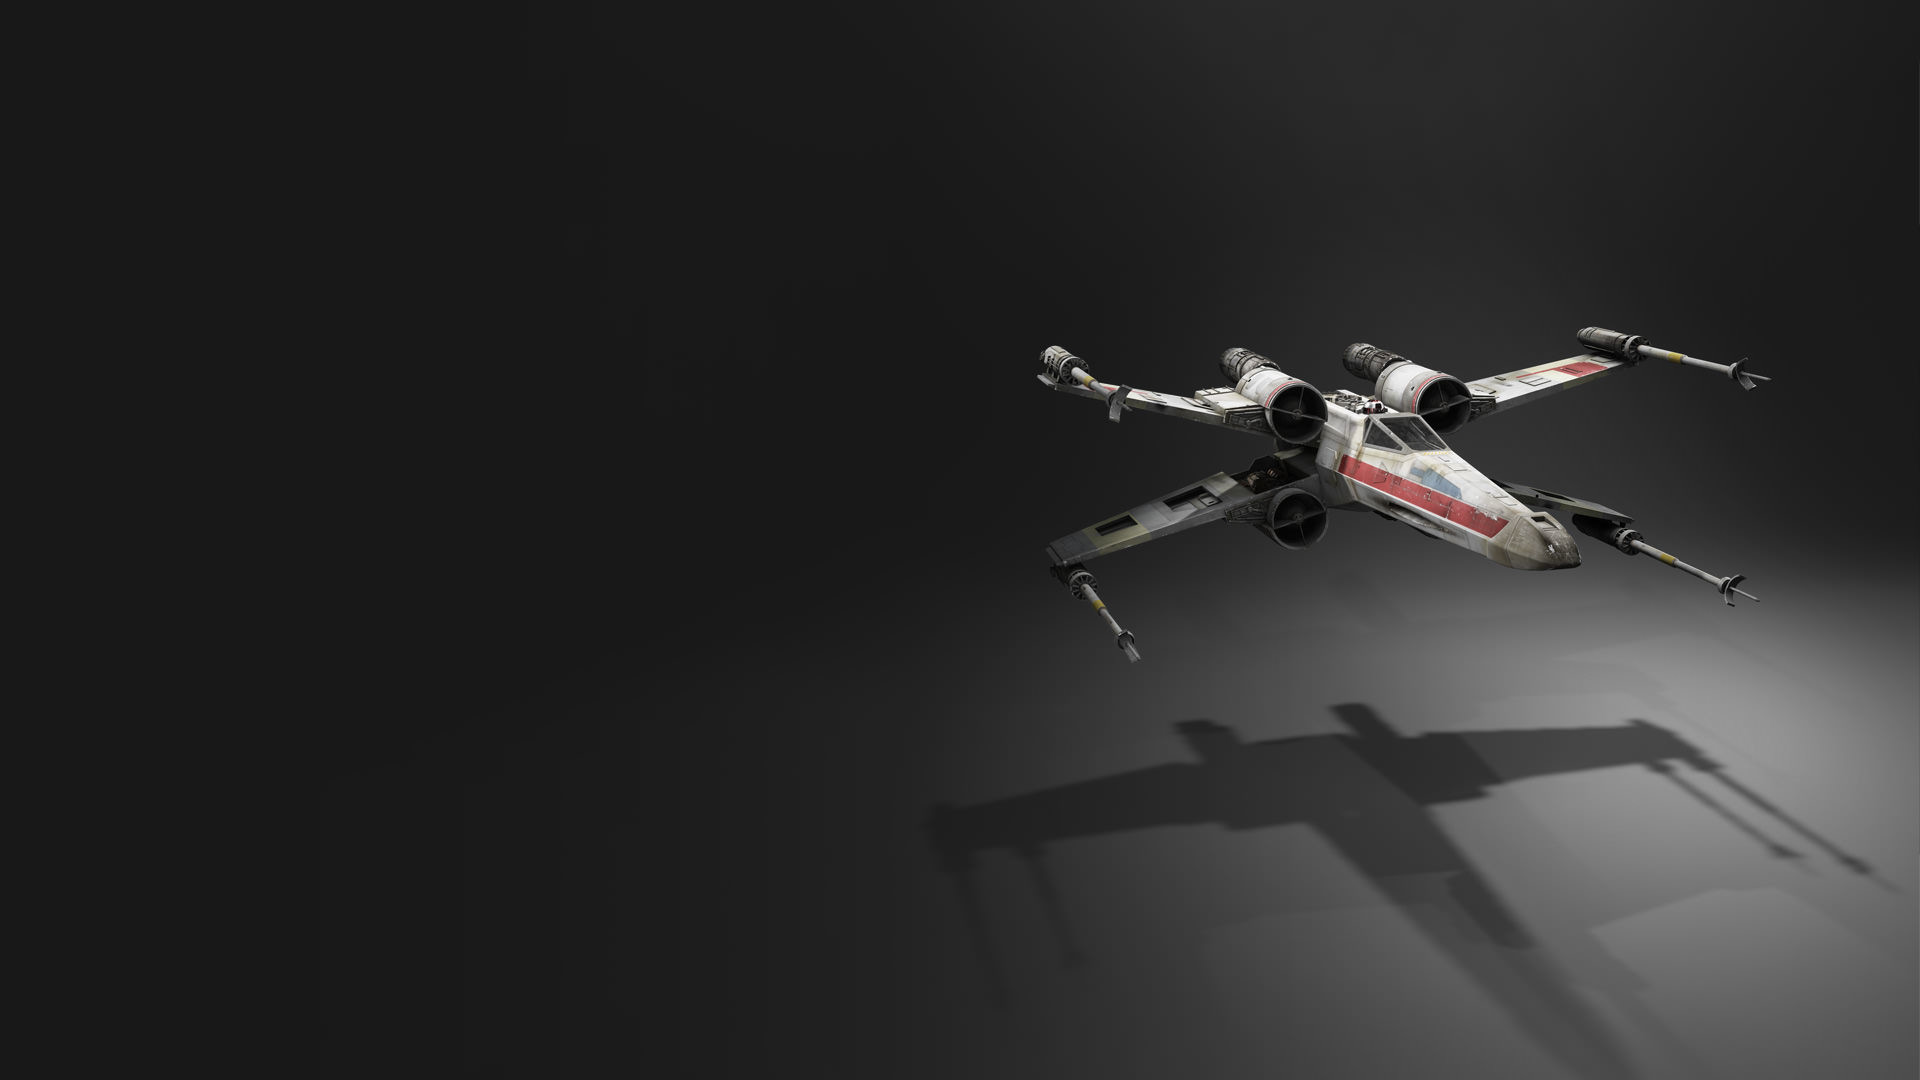 1920x1080 Star Wars X wing Minimalism Wallpapers HD Desktop and Mobile